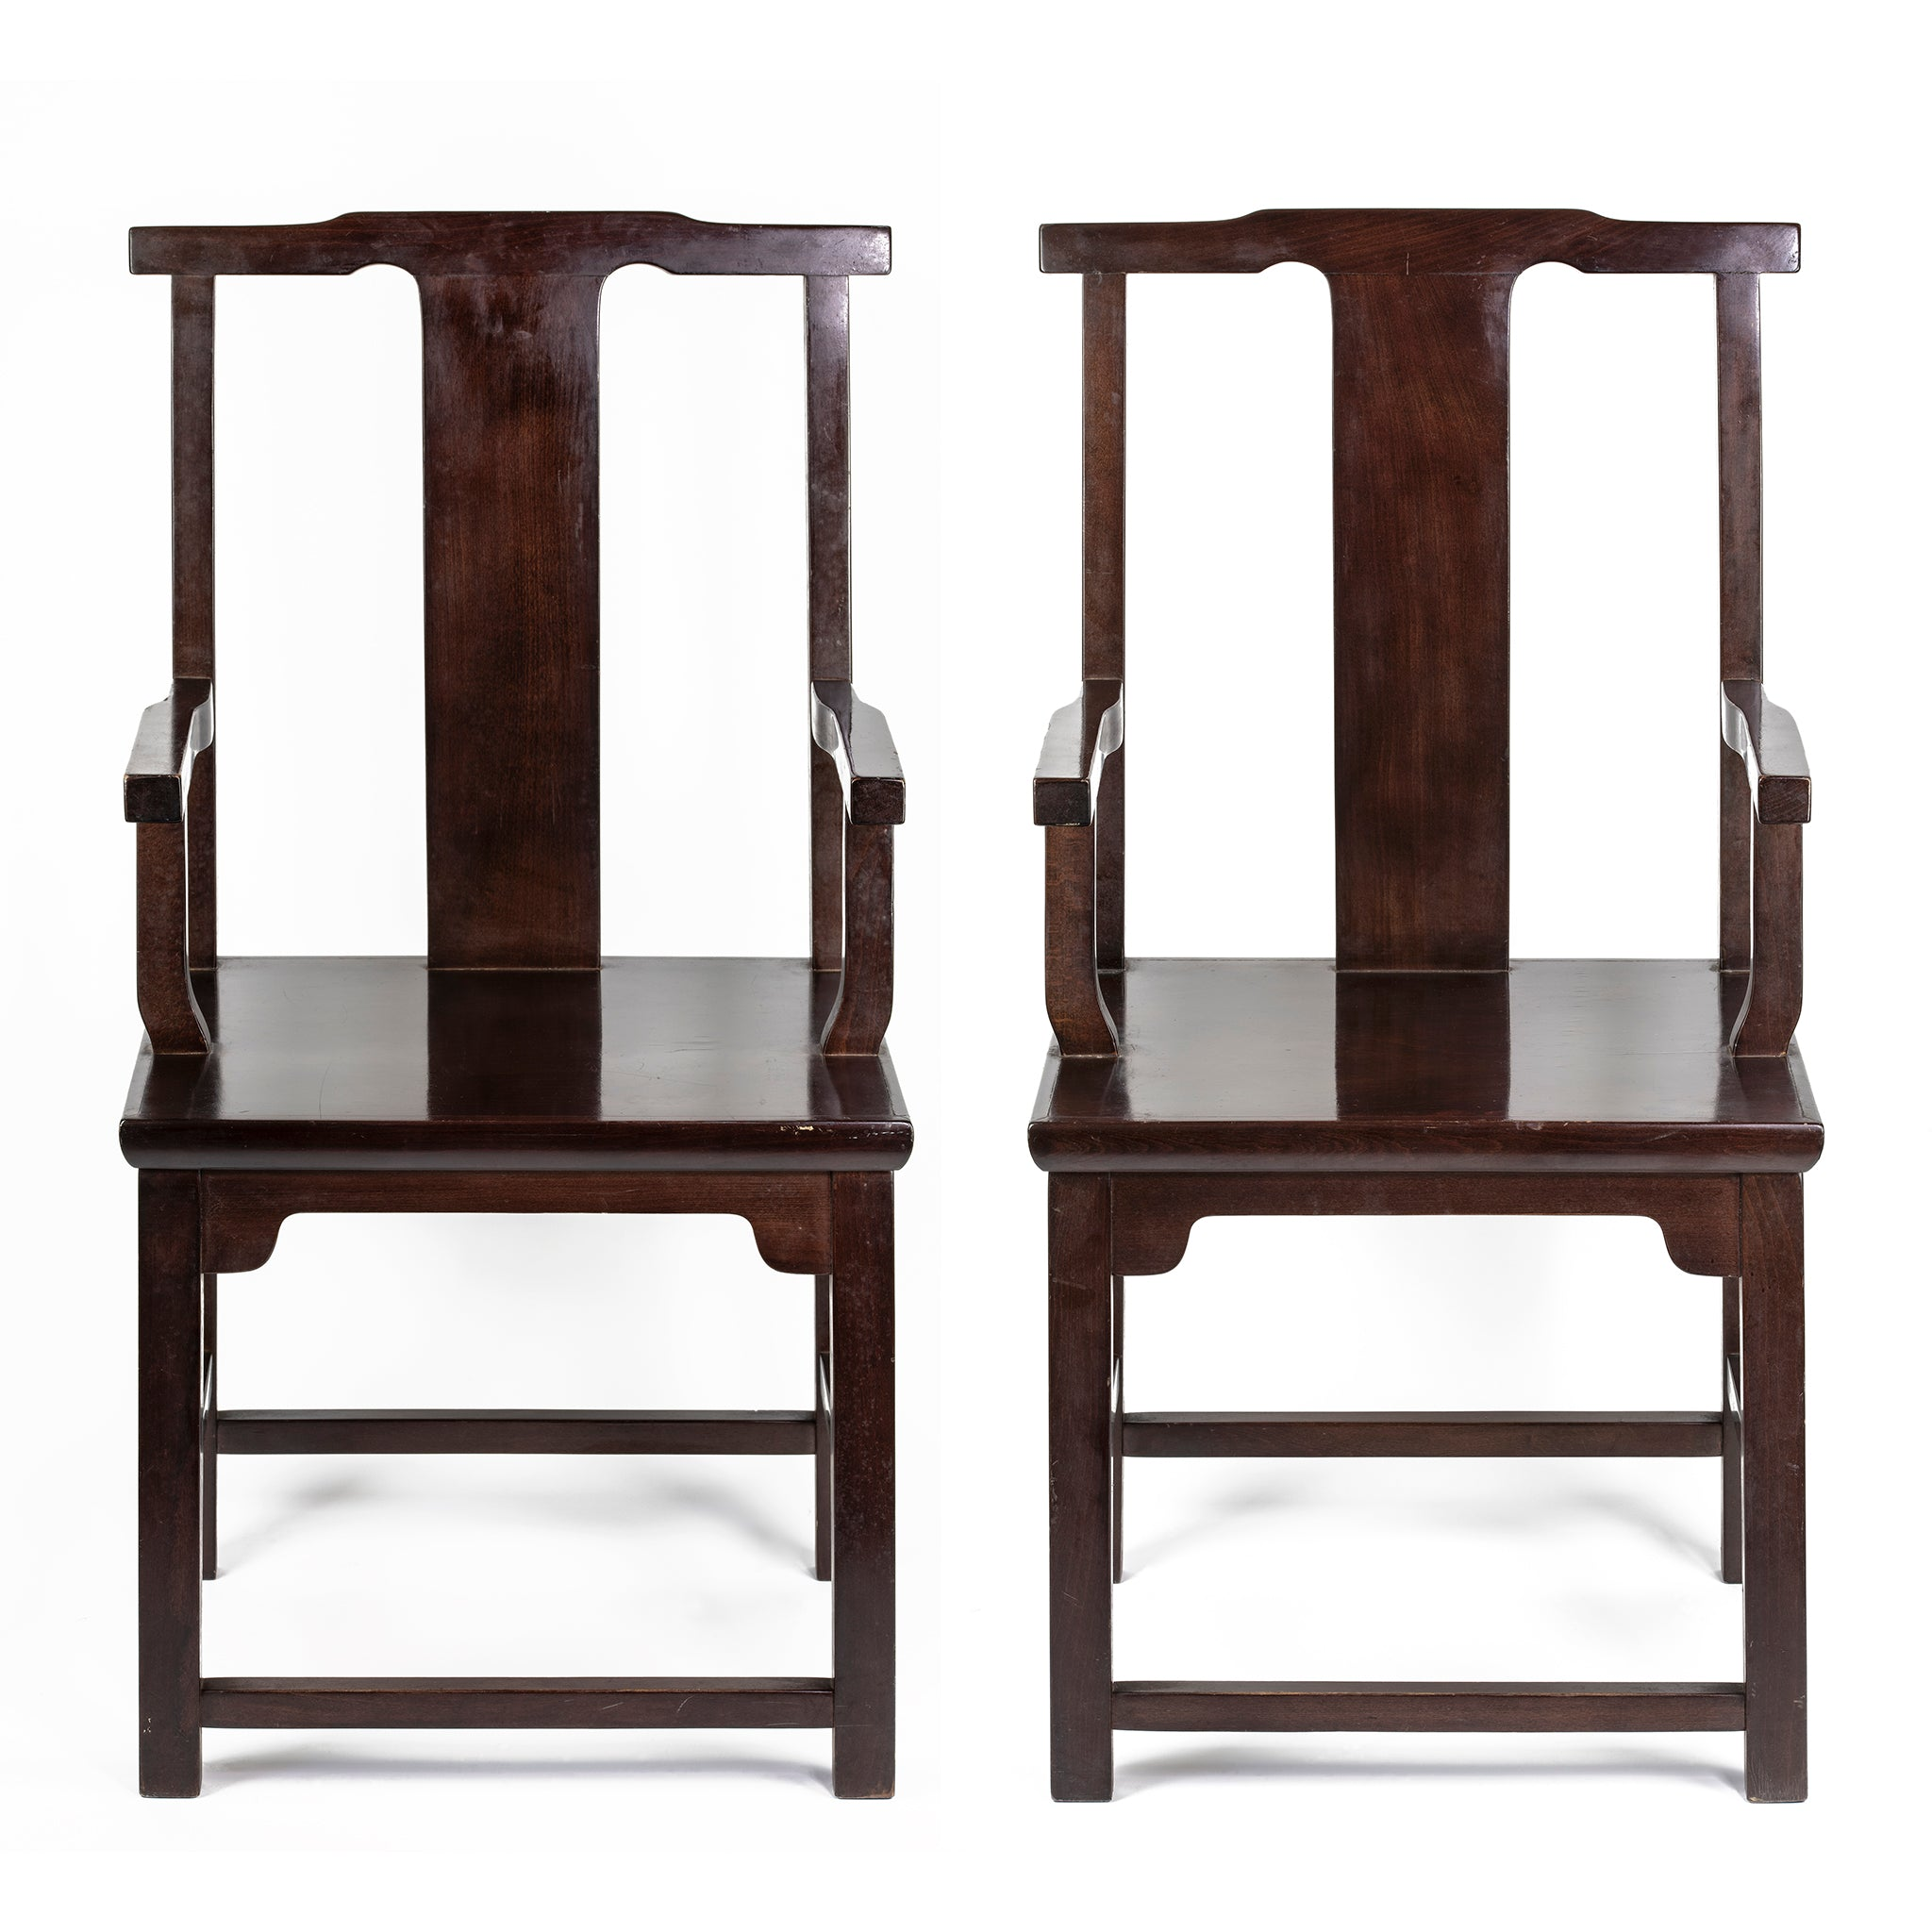 Pair of chairs | China, Beginning of the 20th century